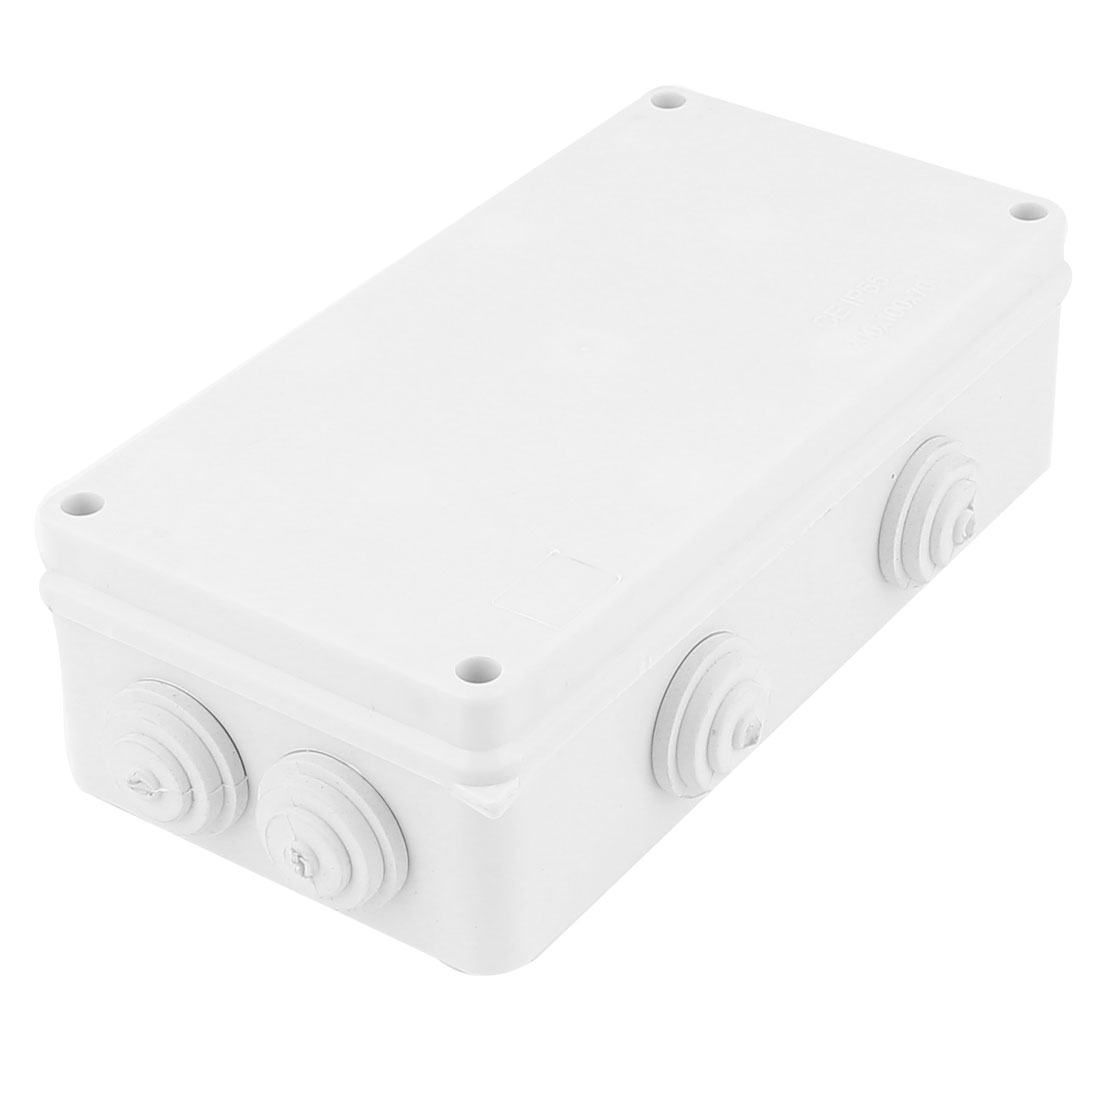 White ABS Dustproof IP65 Enclosure Square Junction Box 200x100x70mm